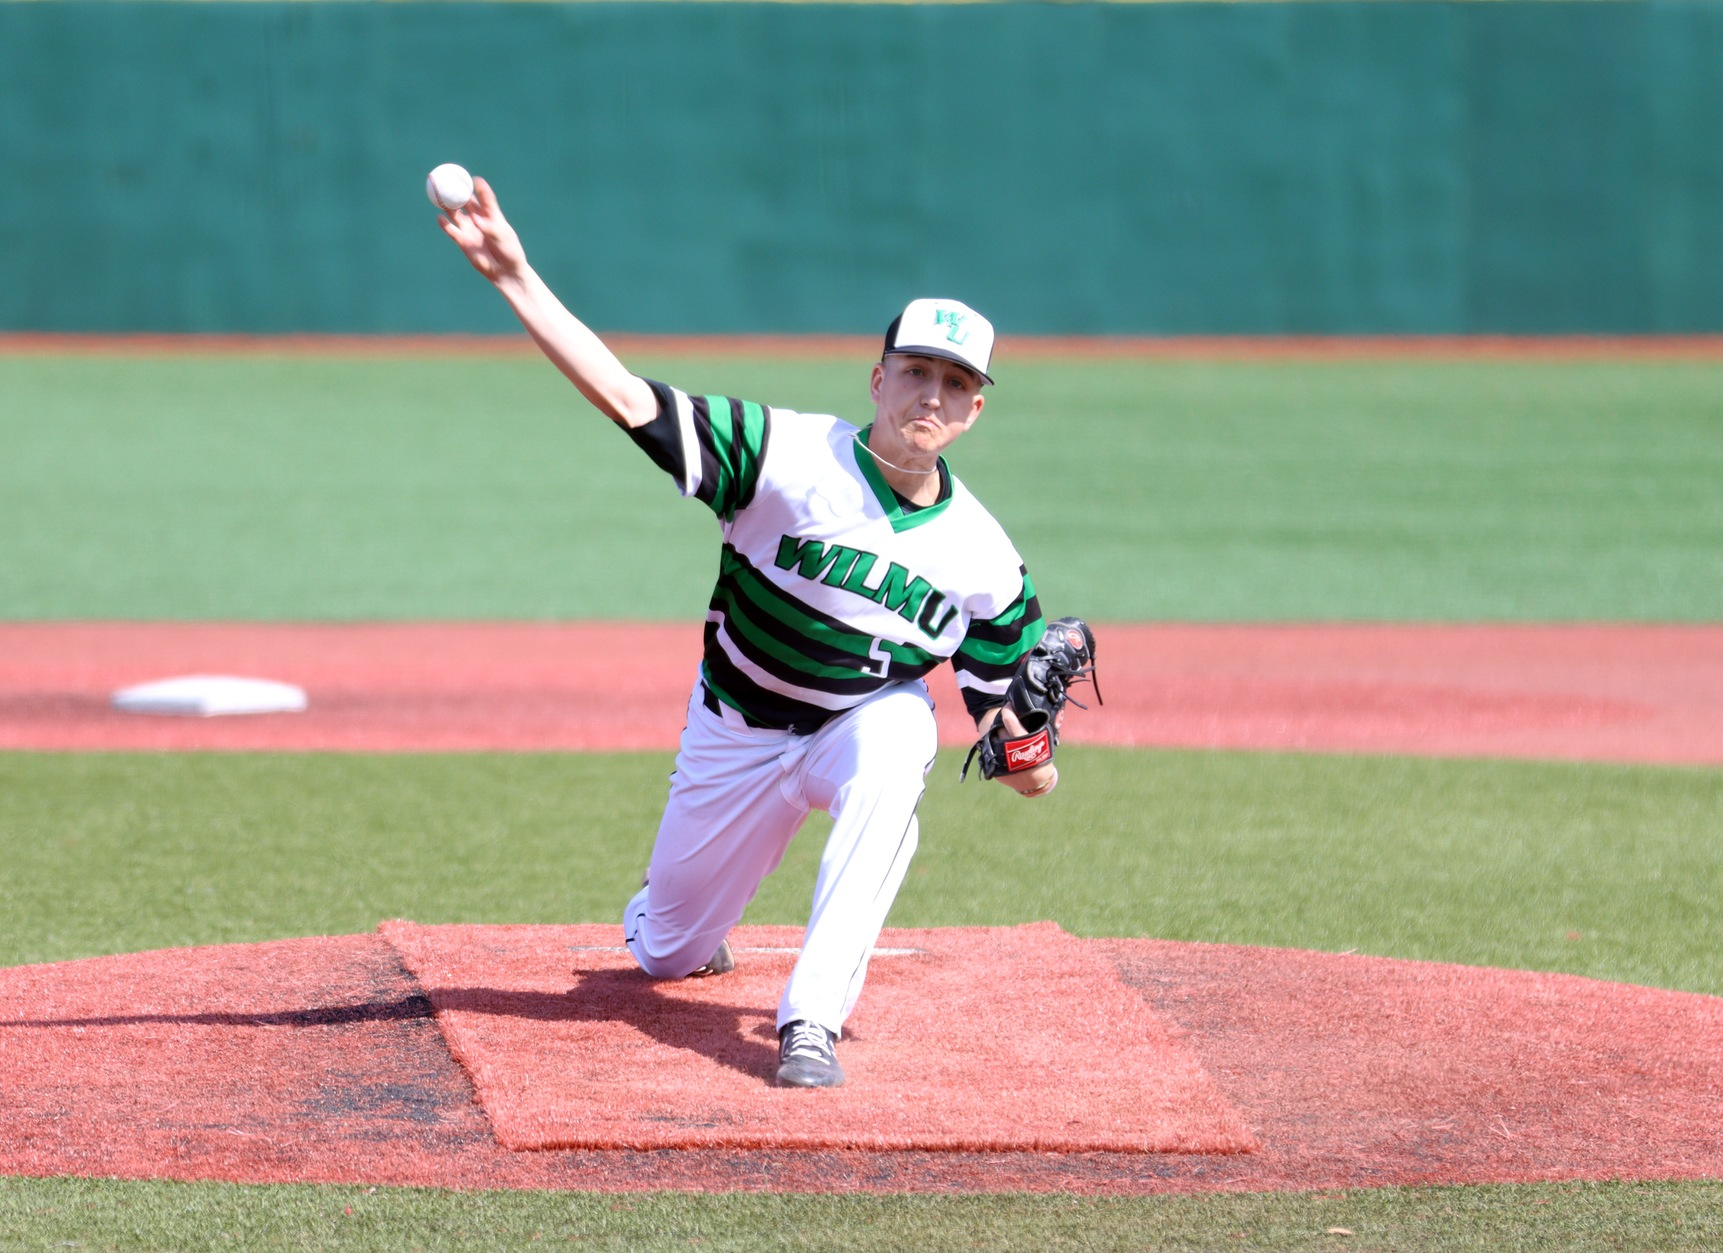 File photo of Matt Warrington who struck out 12 in six innings on Tuesday. Copyright 2020; Wilmington University. All rights reserved. Photo by Dan Lauletta. February 23, 2020 vs. #12 New York Tech in Myrtle Beach.